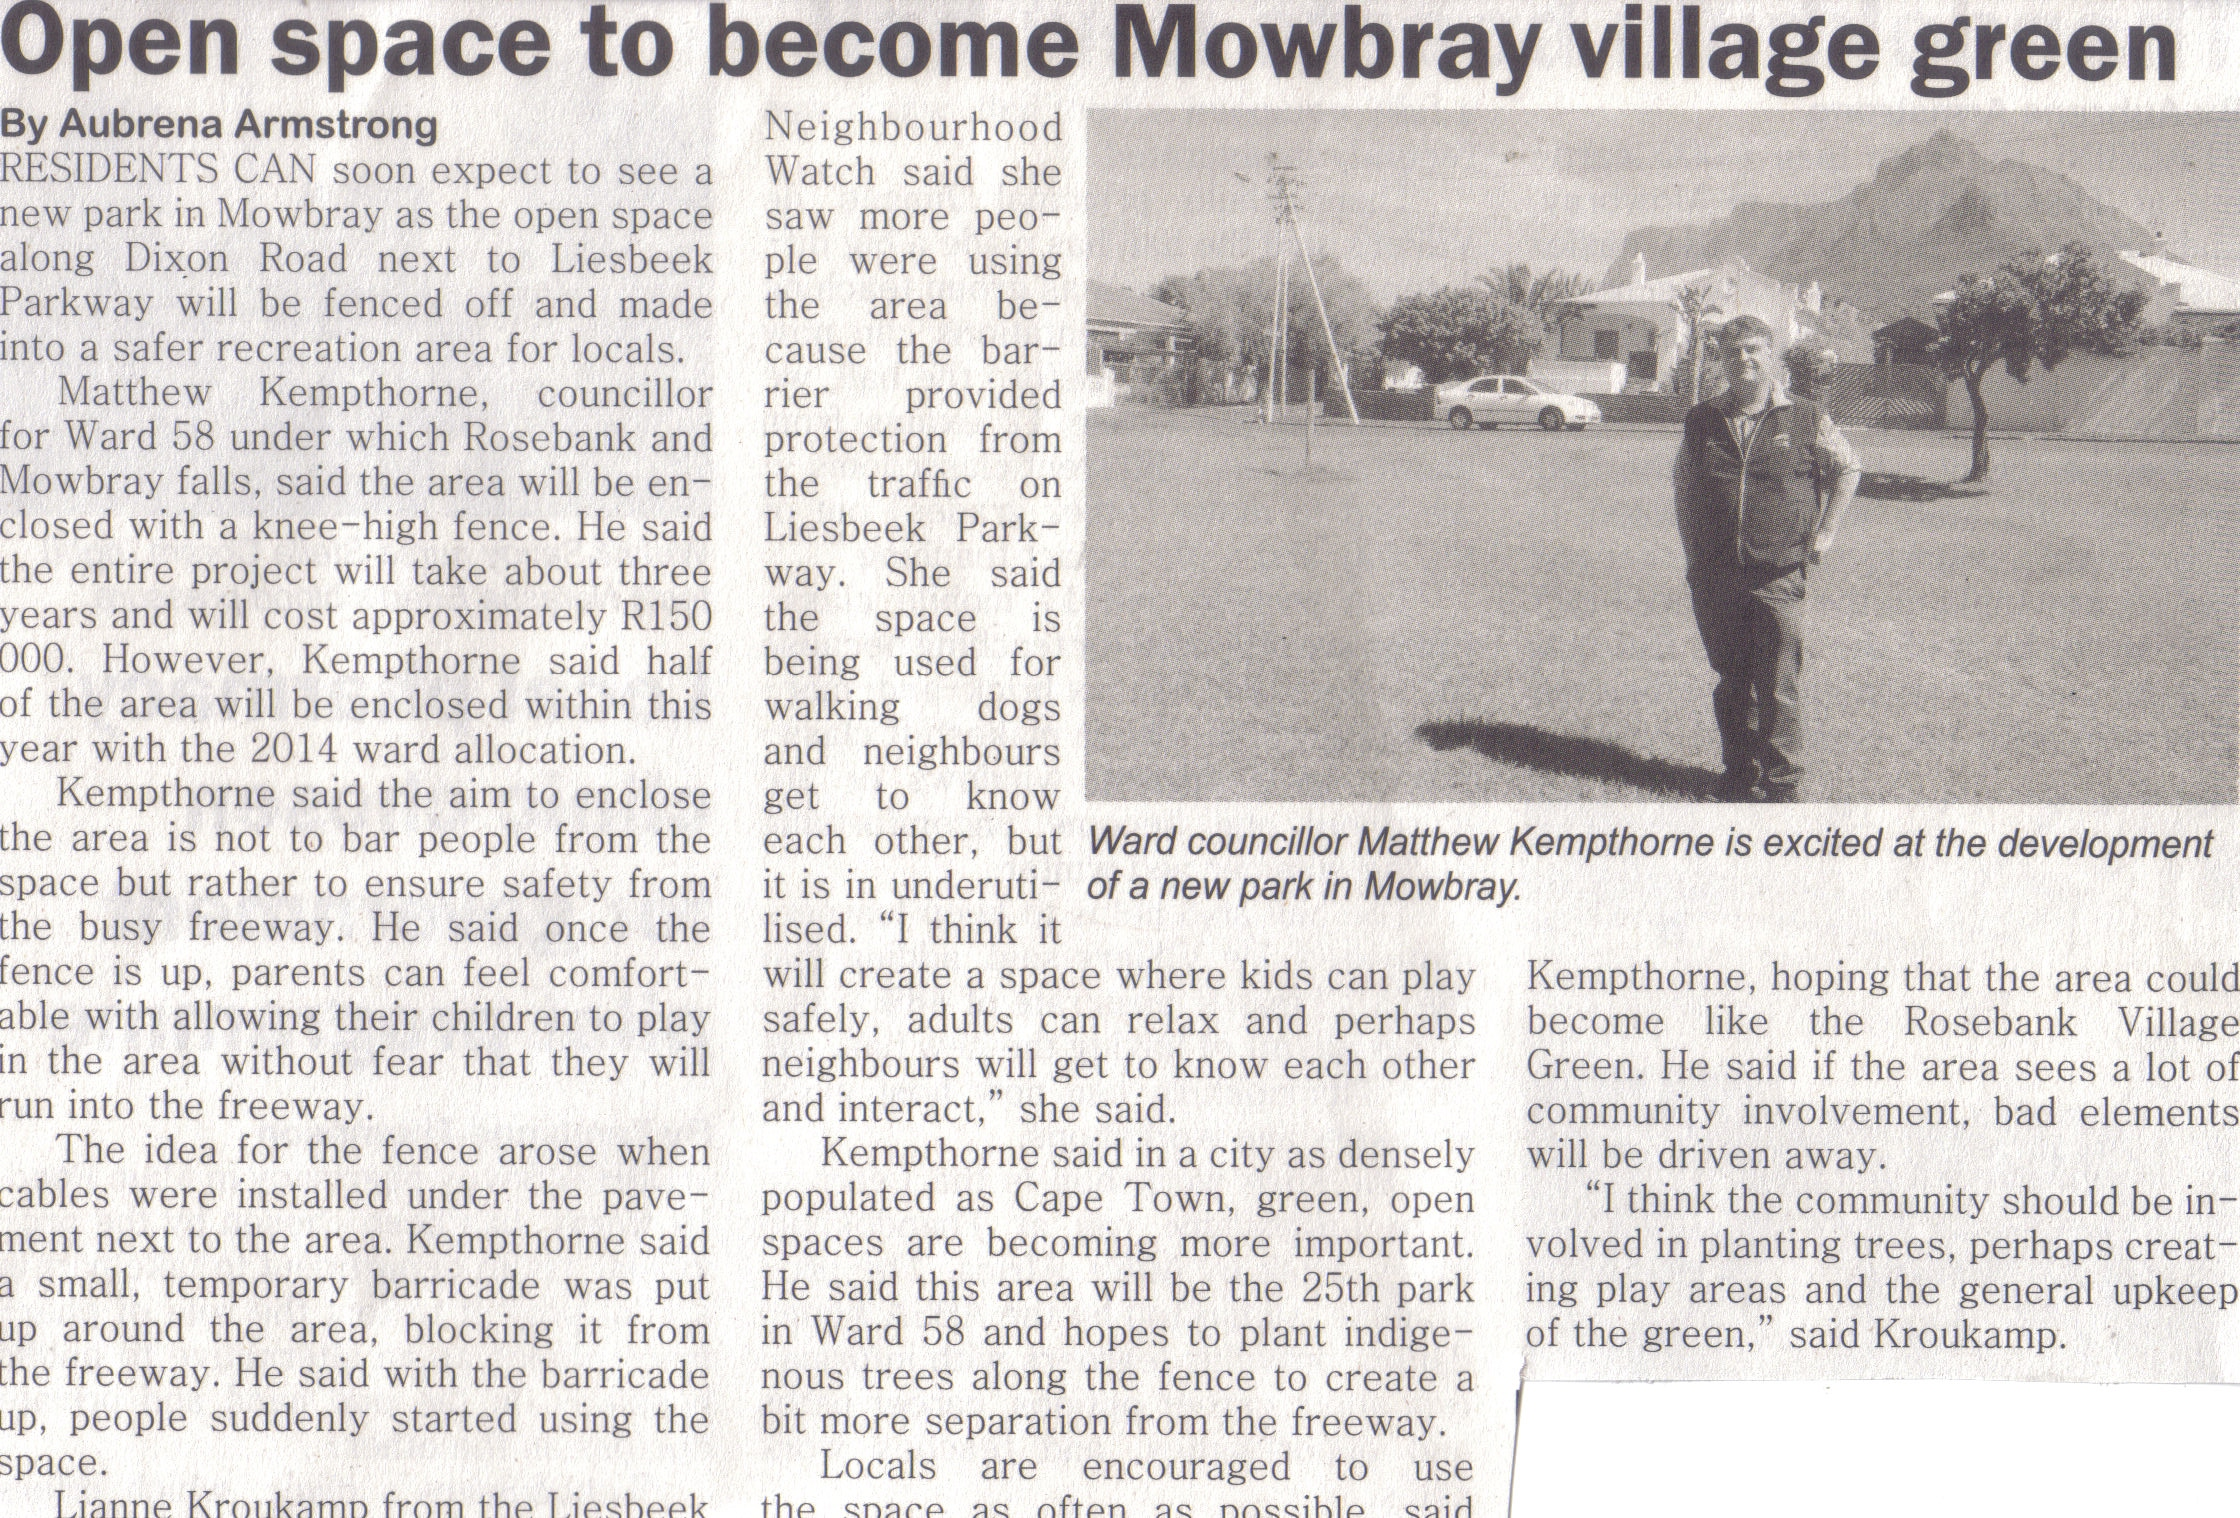 Open space to become Mowbray Village green (Rosebank & Mowbray Life, April 2014)